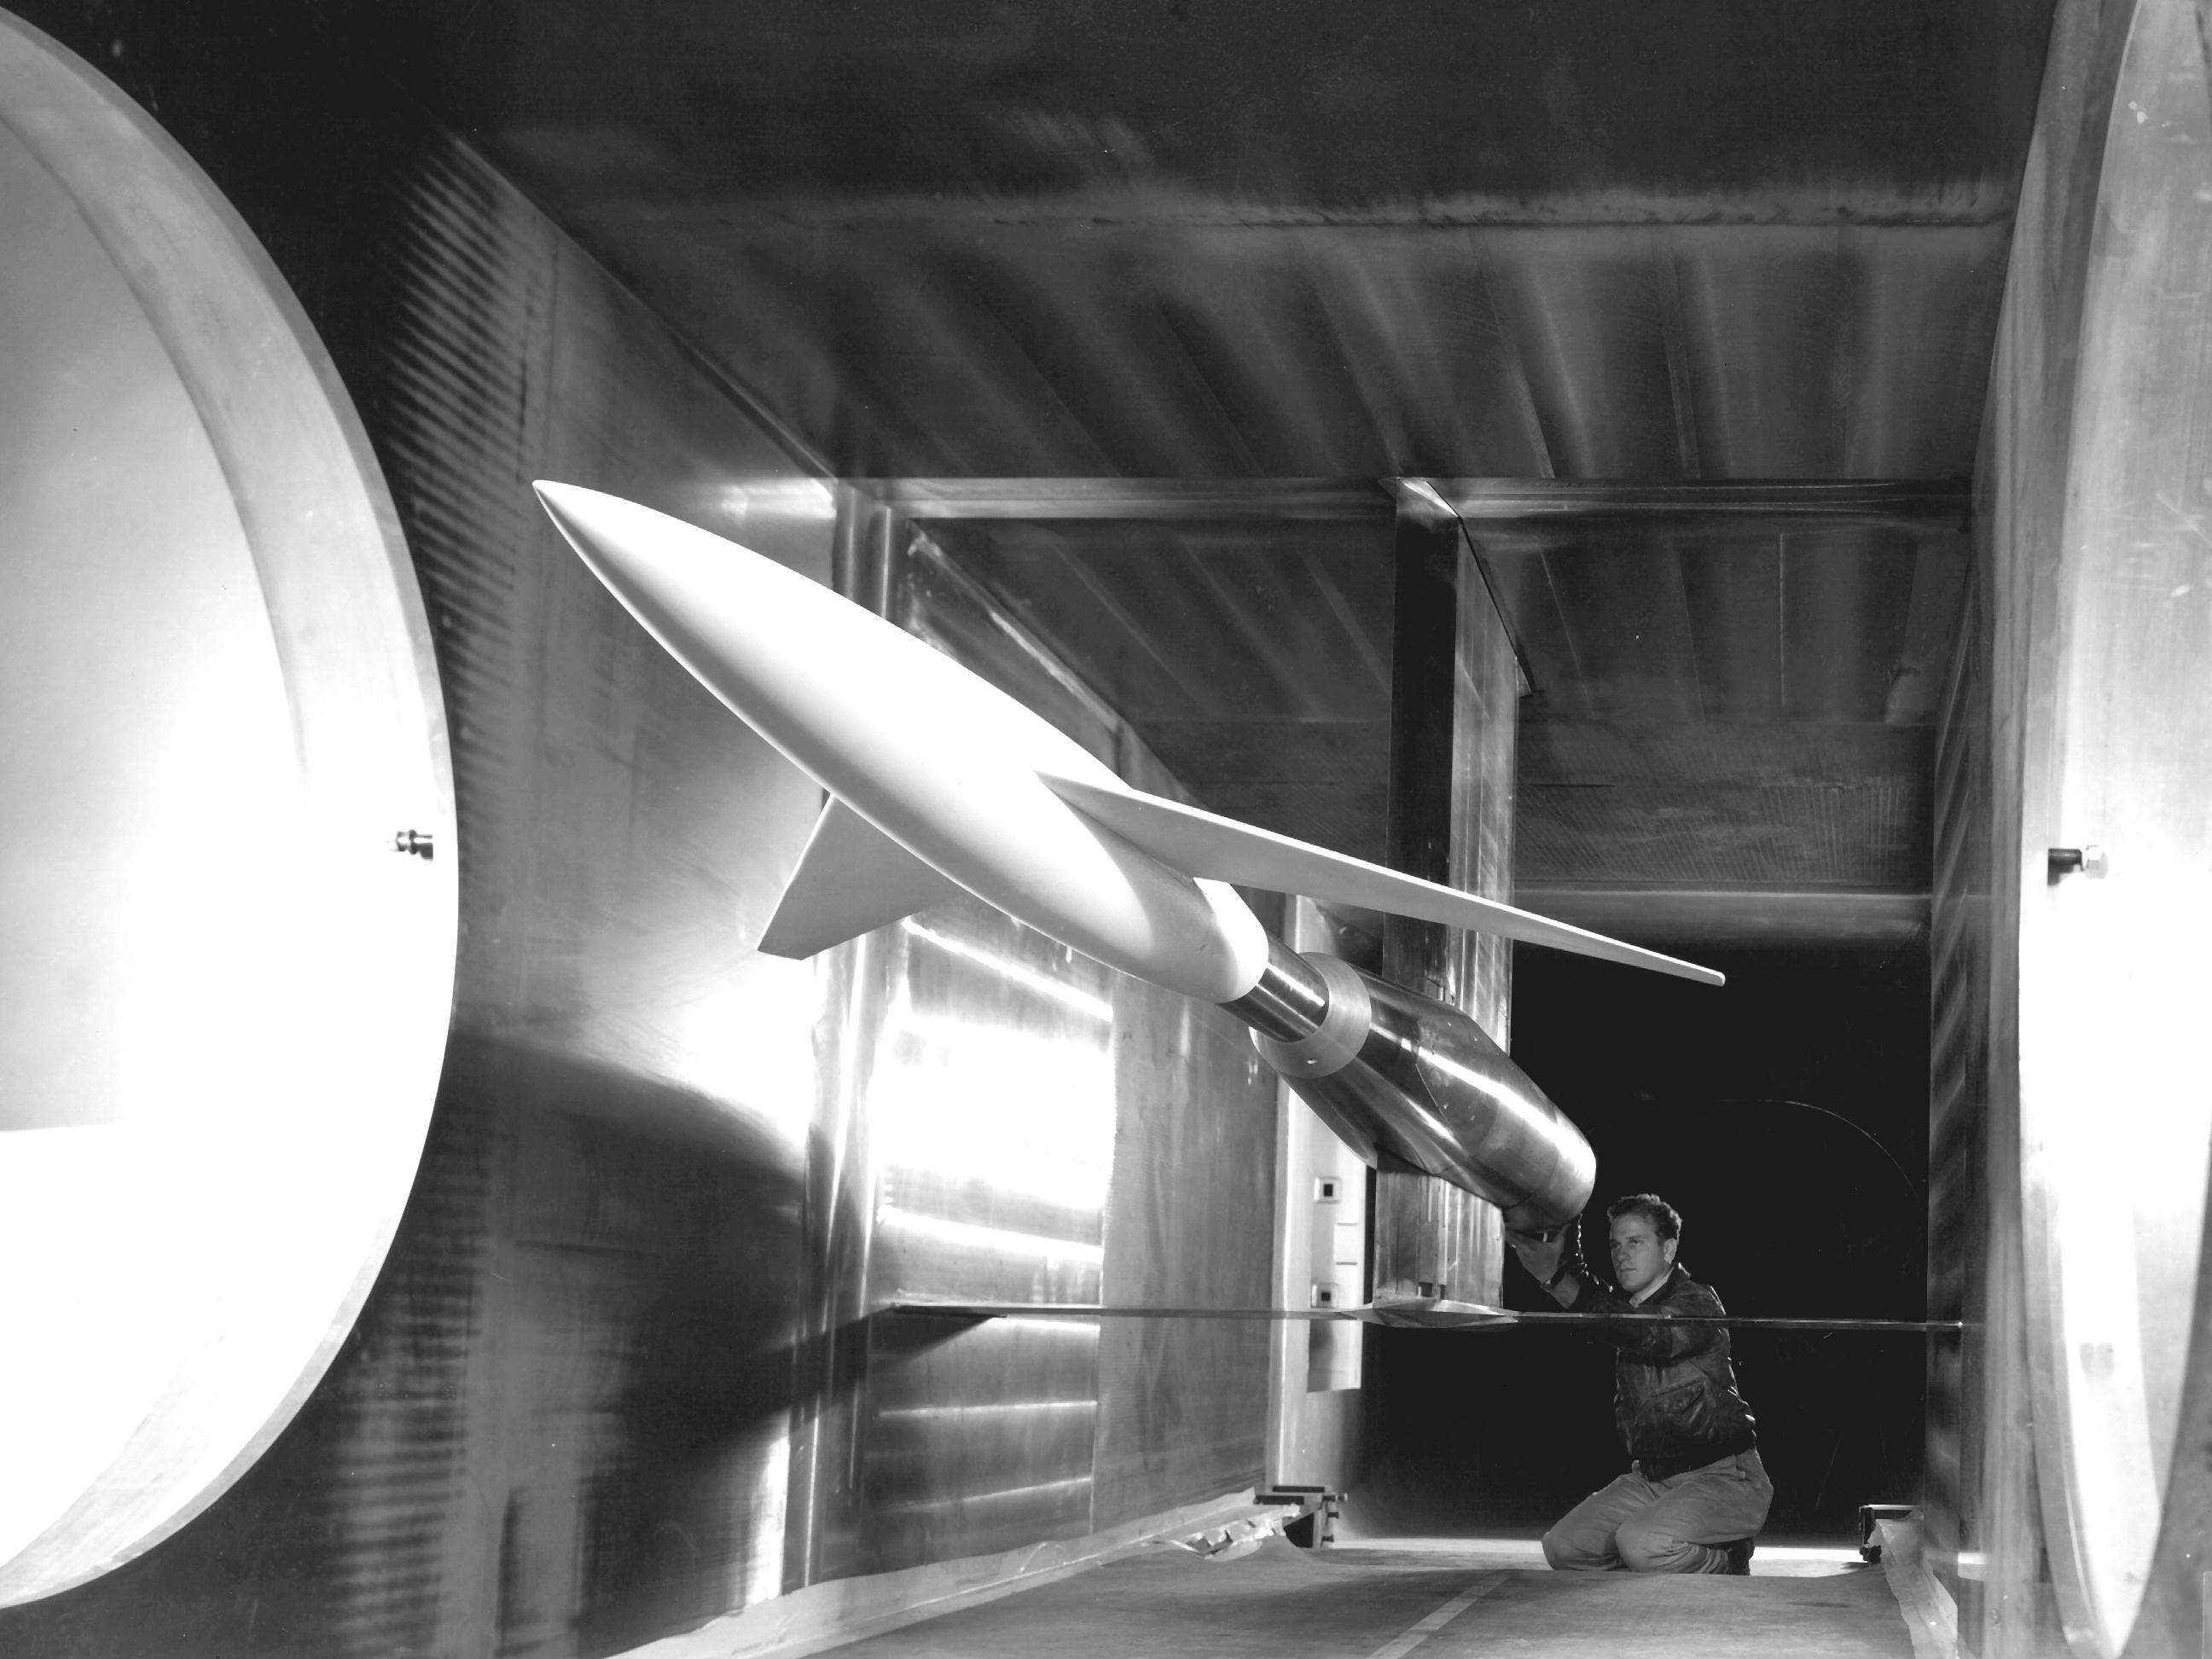 1948 NACA wind tunnel test